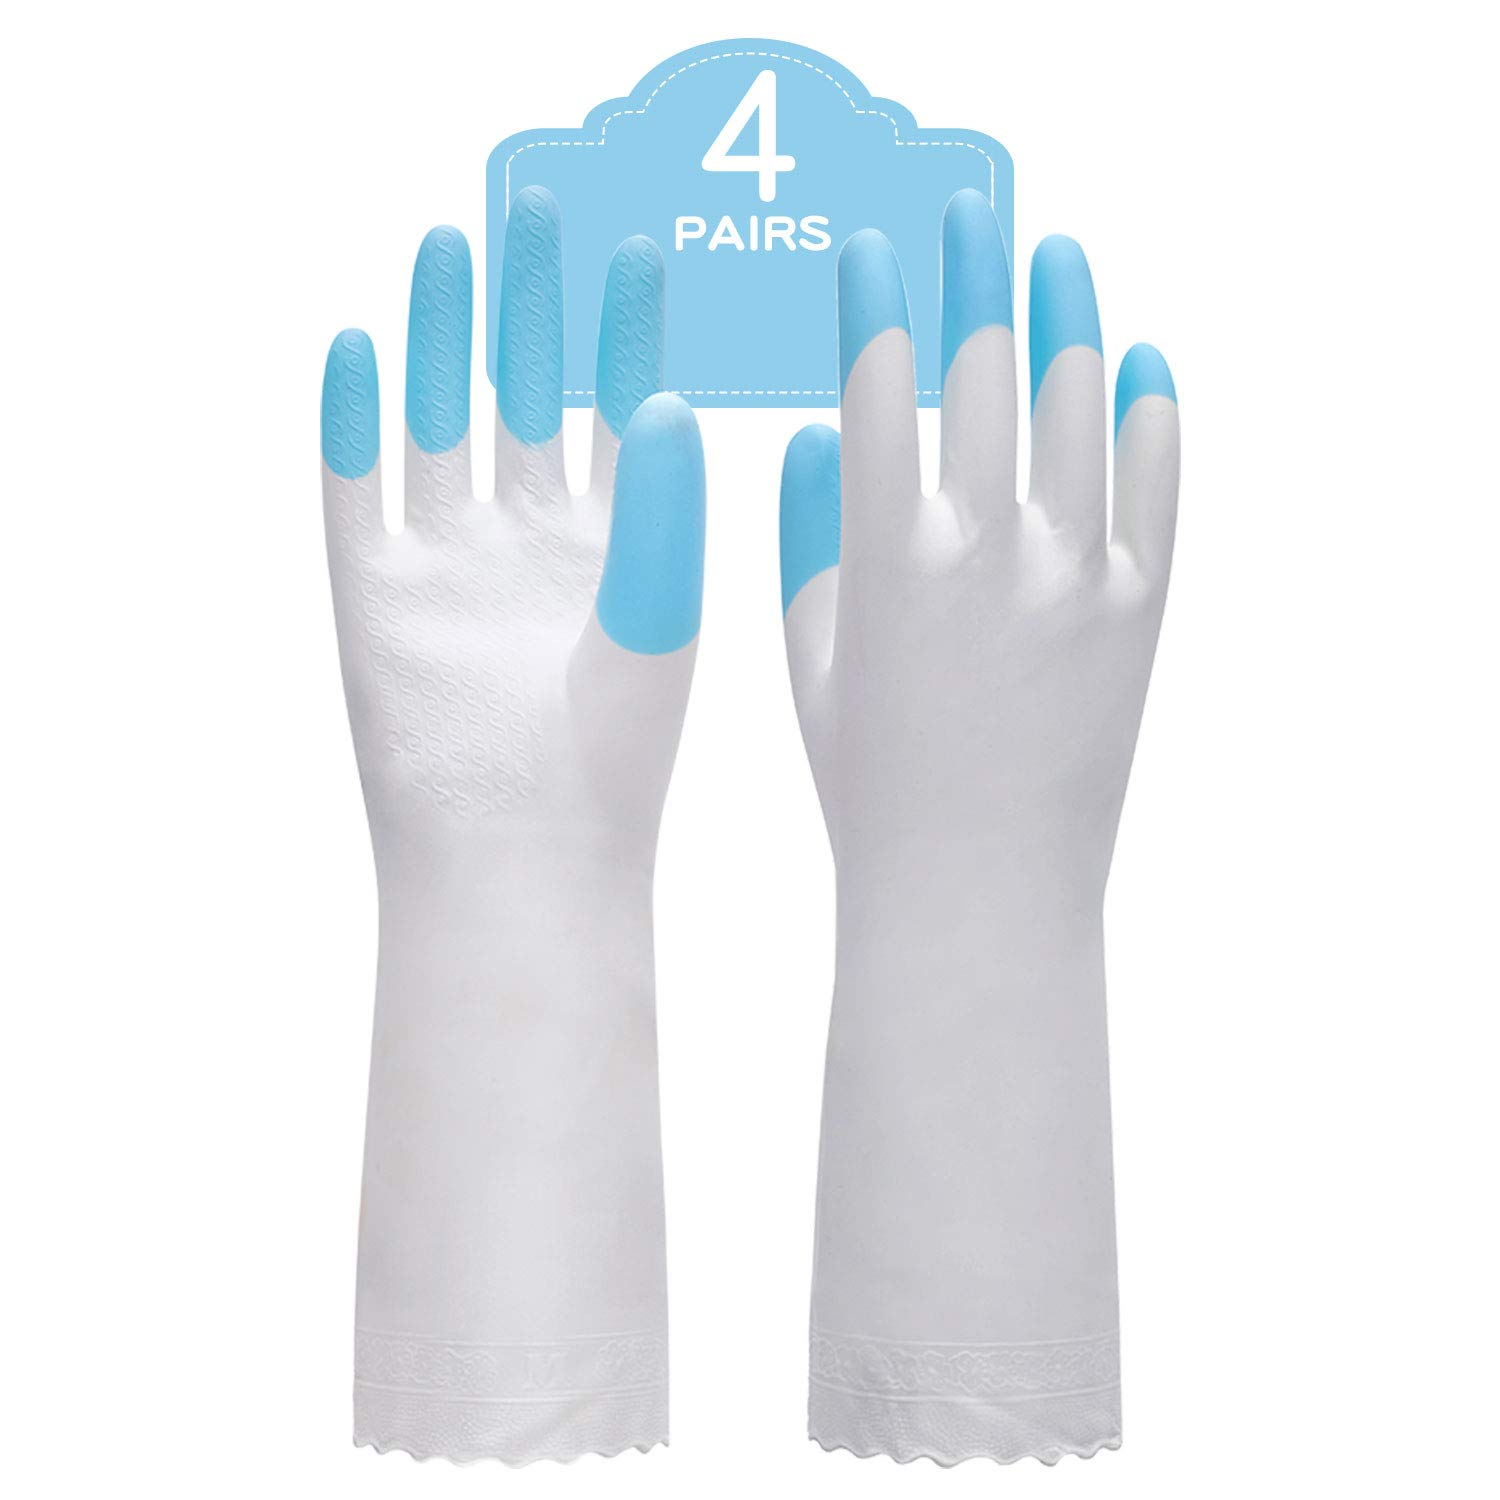 Safety Gloves Double Sided PVC Grip Reusable Workwear PPE Home Garden